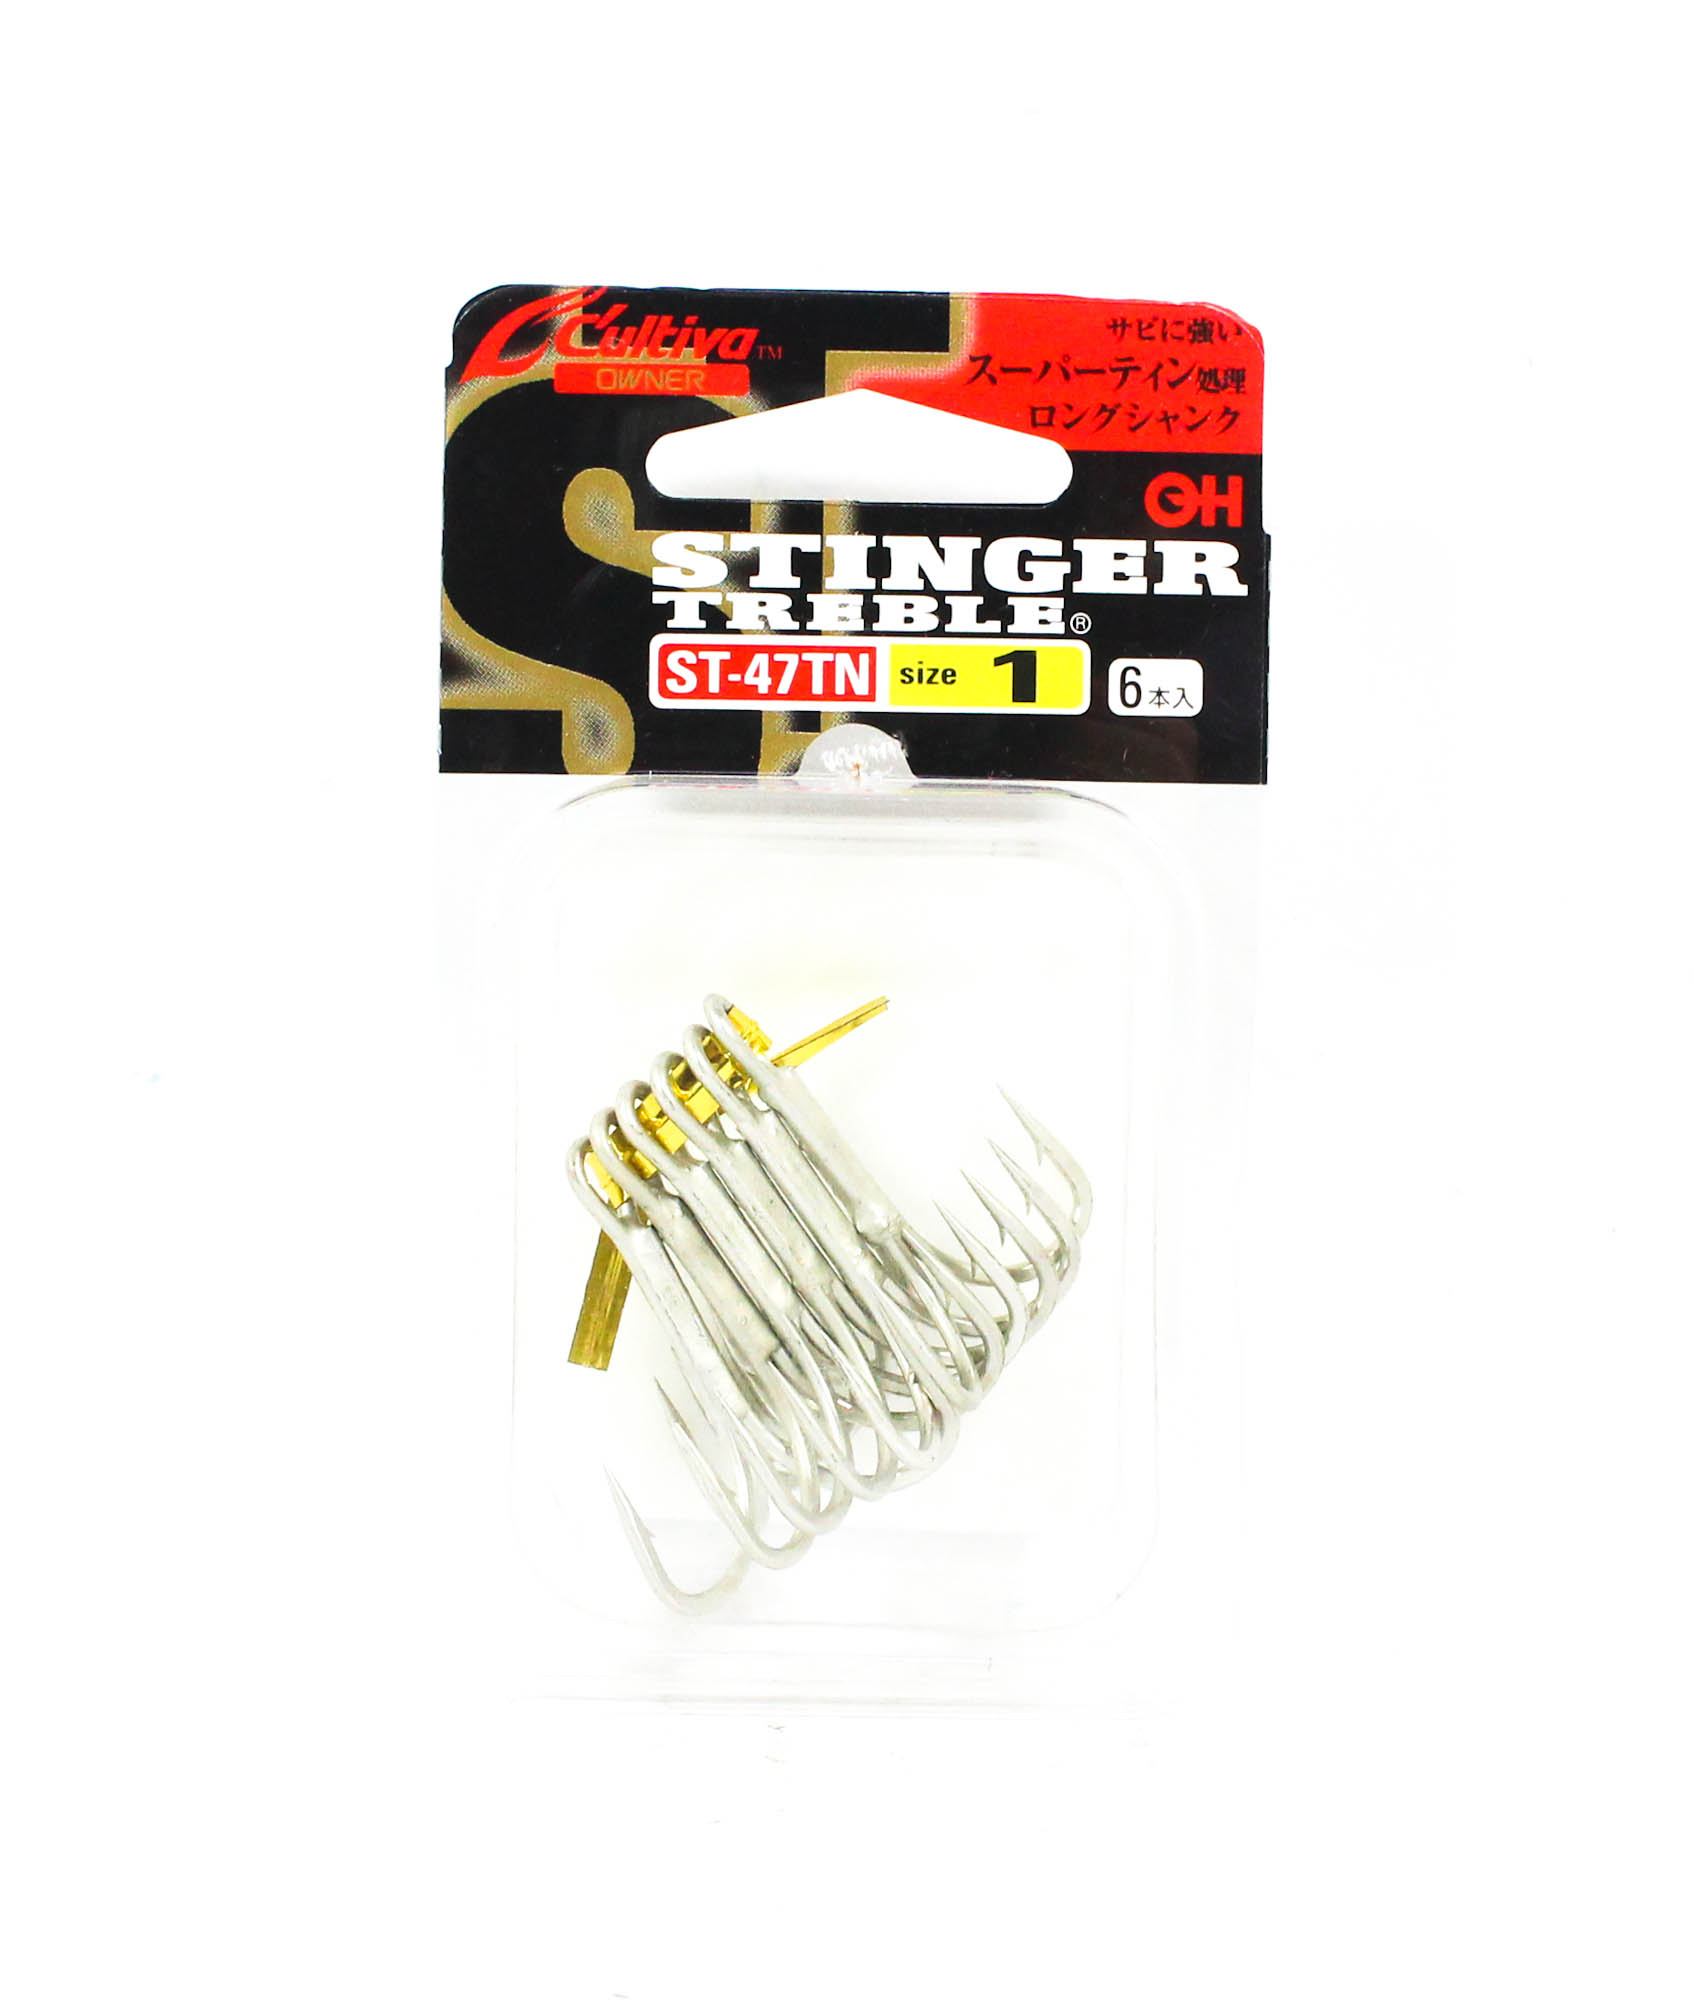 5308 Owner SQT-21 BL Treble Hook 4 Point Barbless Size 1